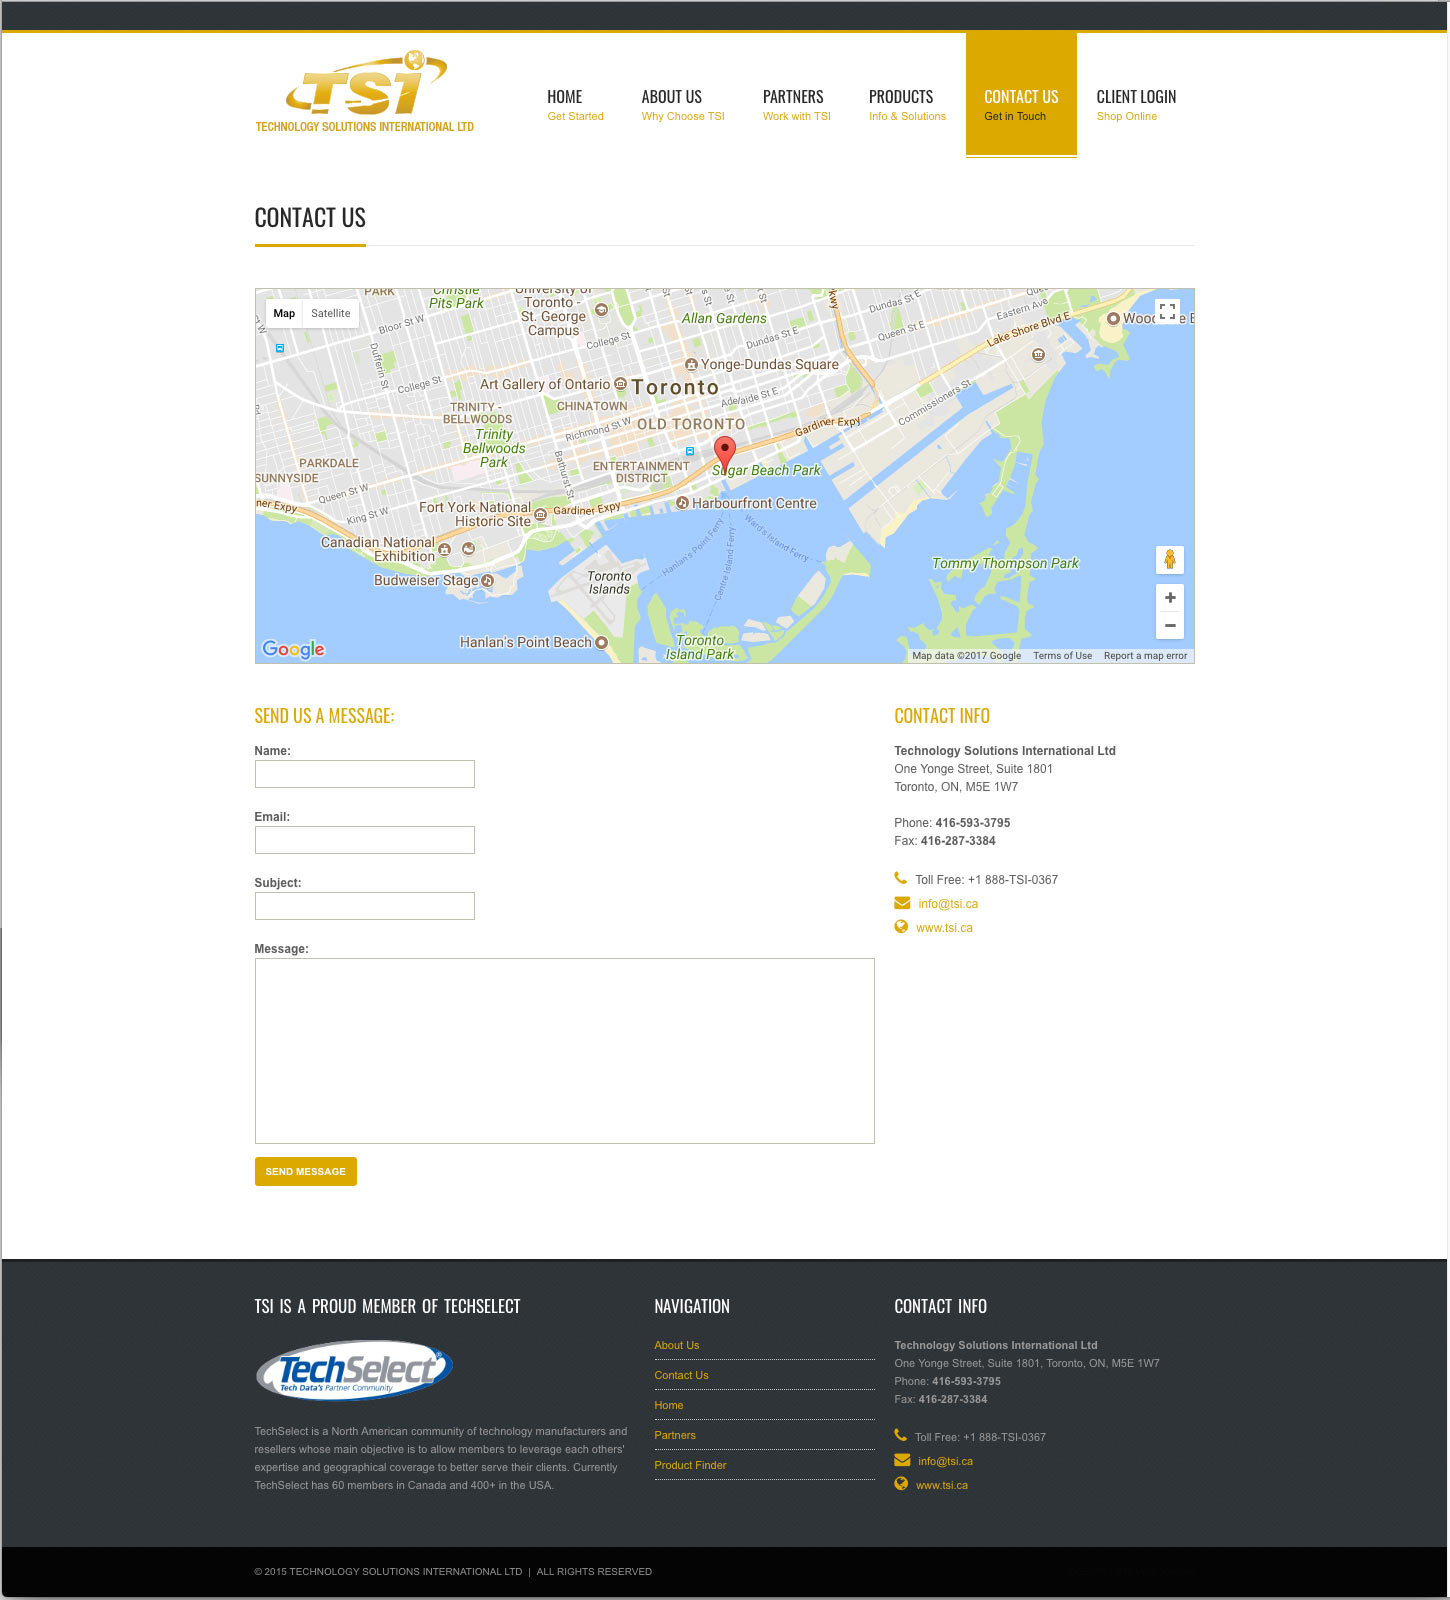 TSI.ca Responsive Website Design: Contact